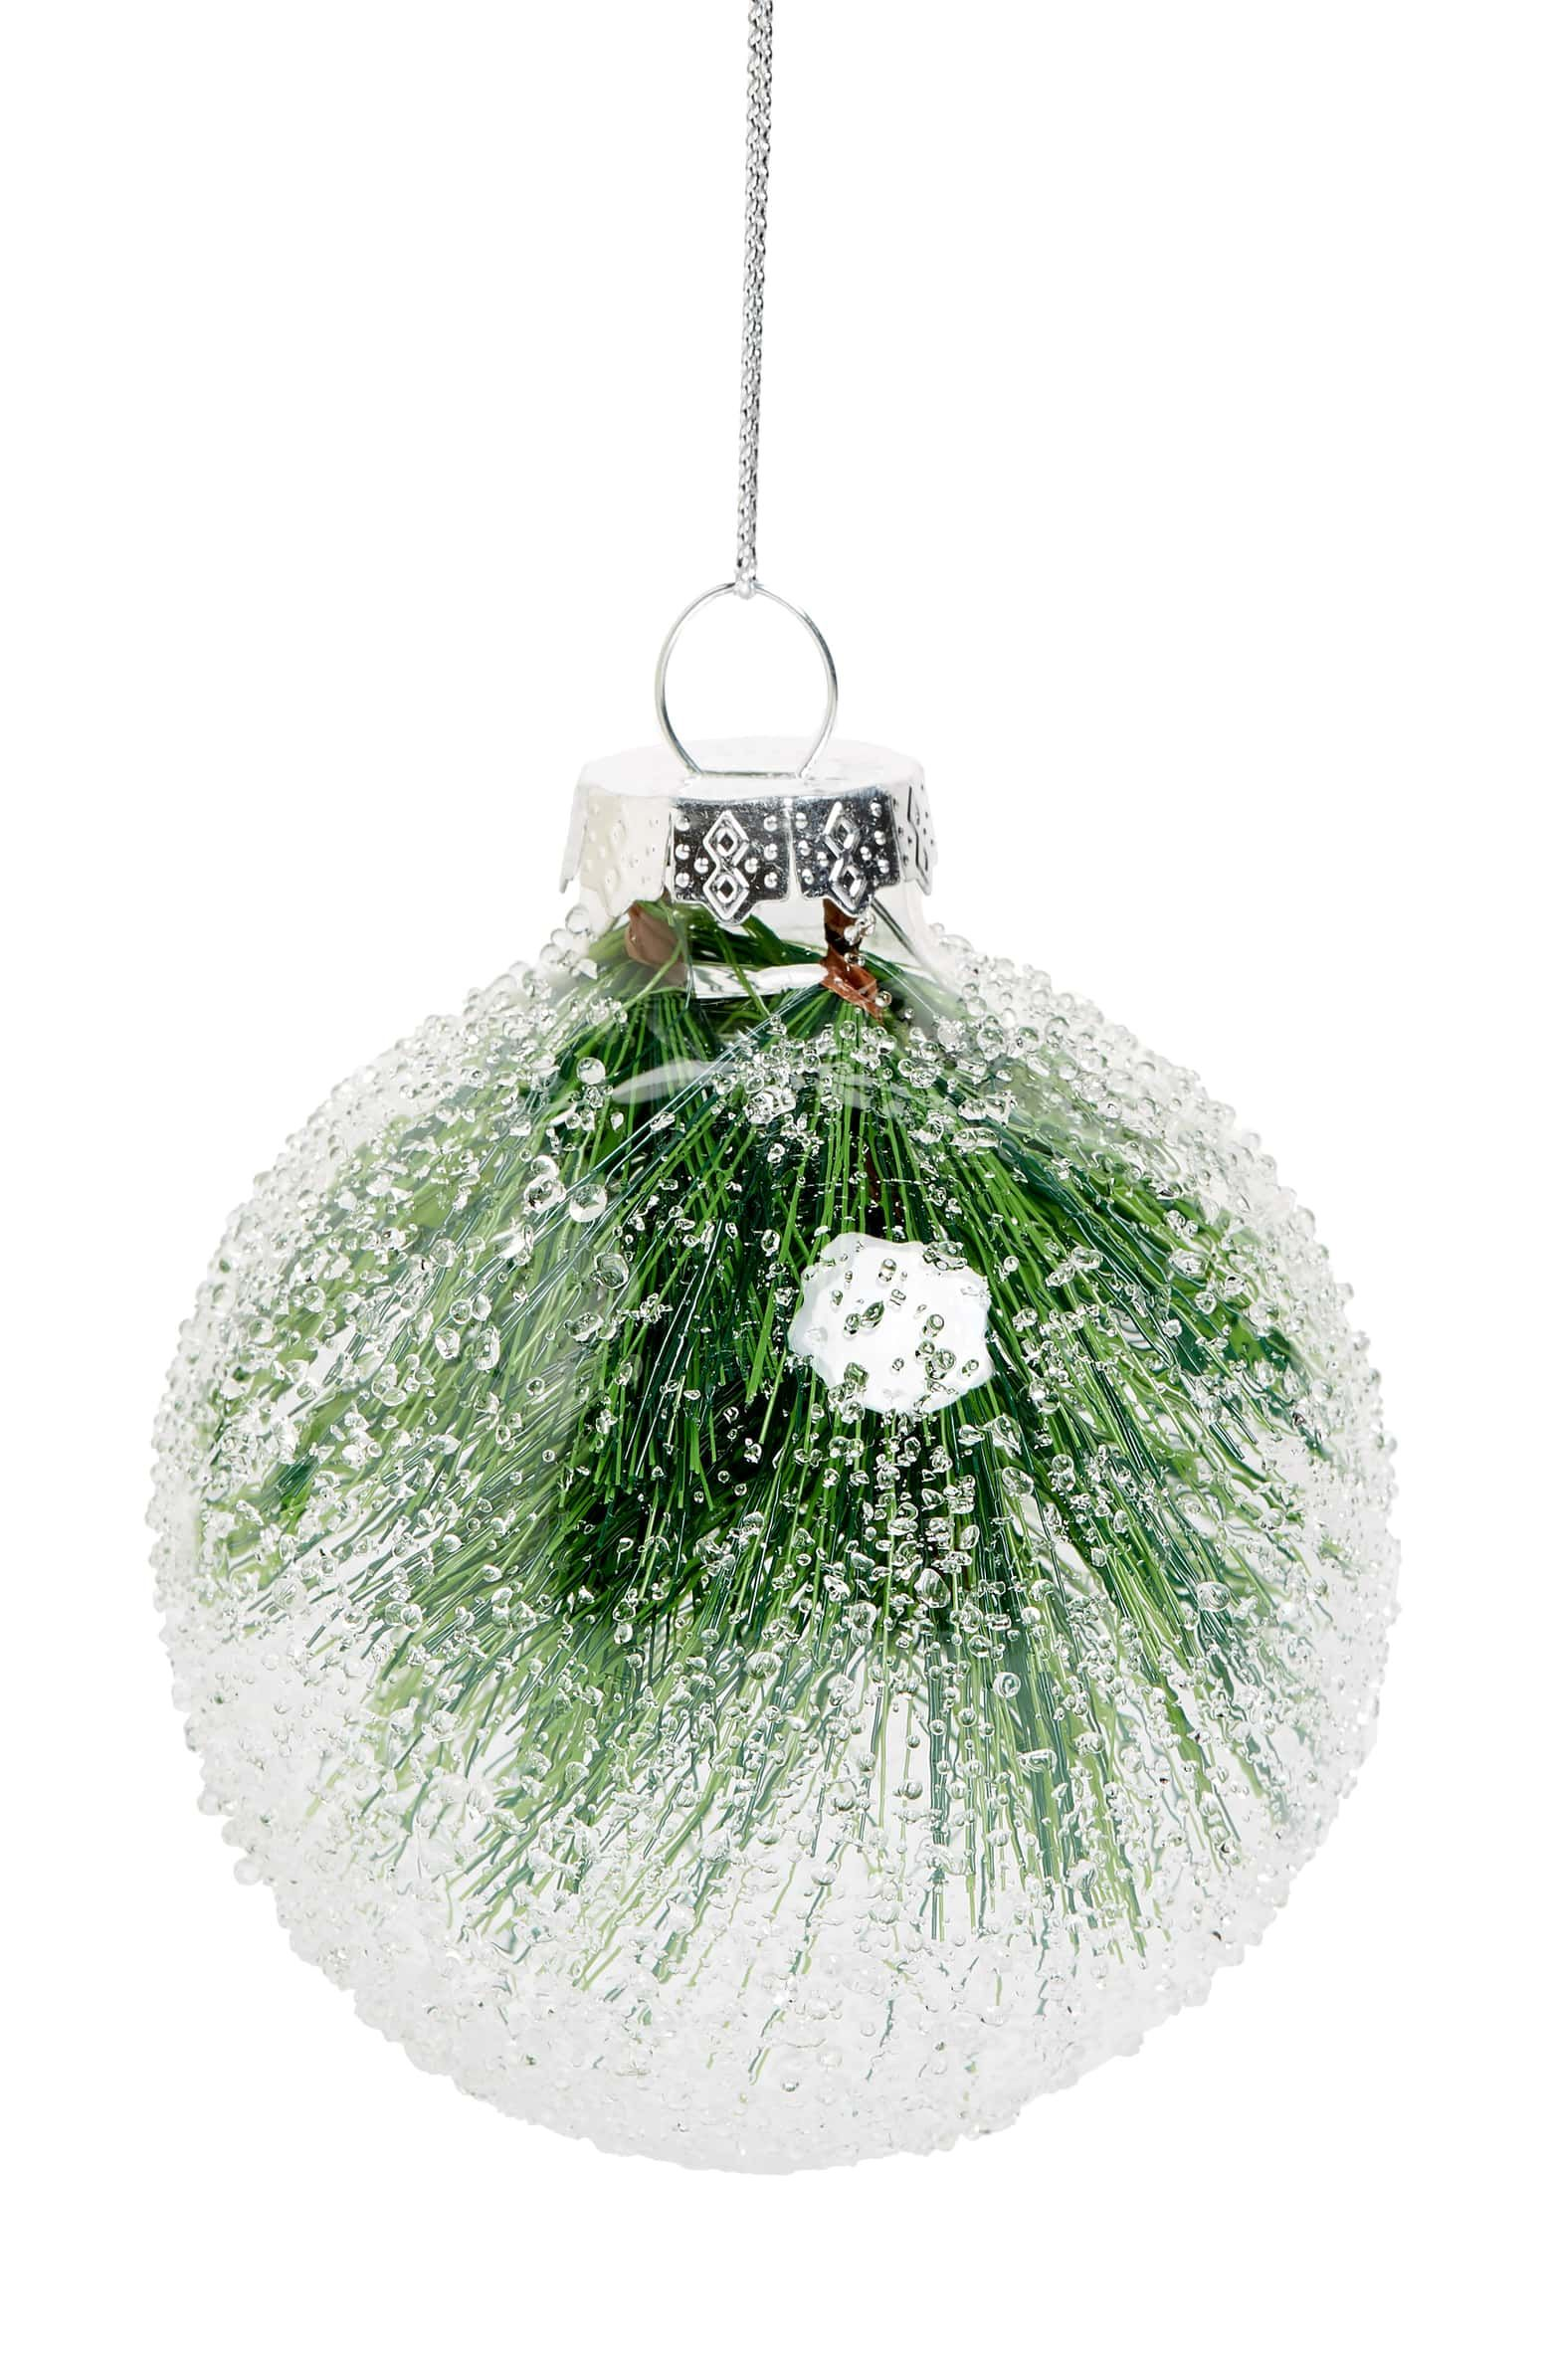 Nordstrom At Home Greenery Ornament Nordstrom Picture Christmas Ornaments Diy Christmas Ornaments Christmas Tree Decorating Ideas Pictures